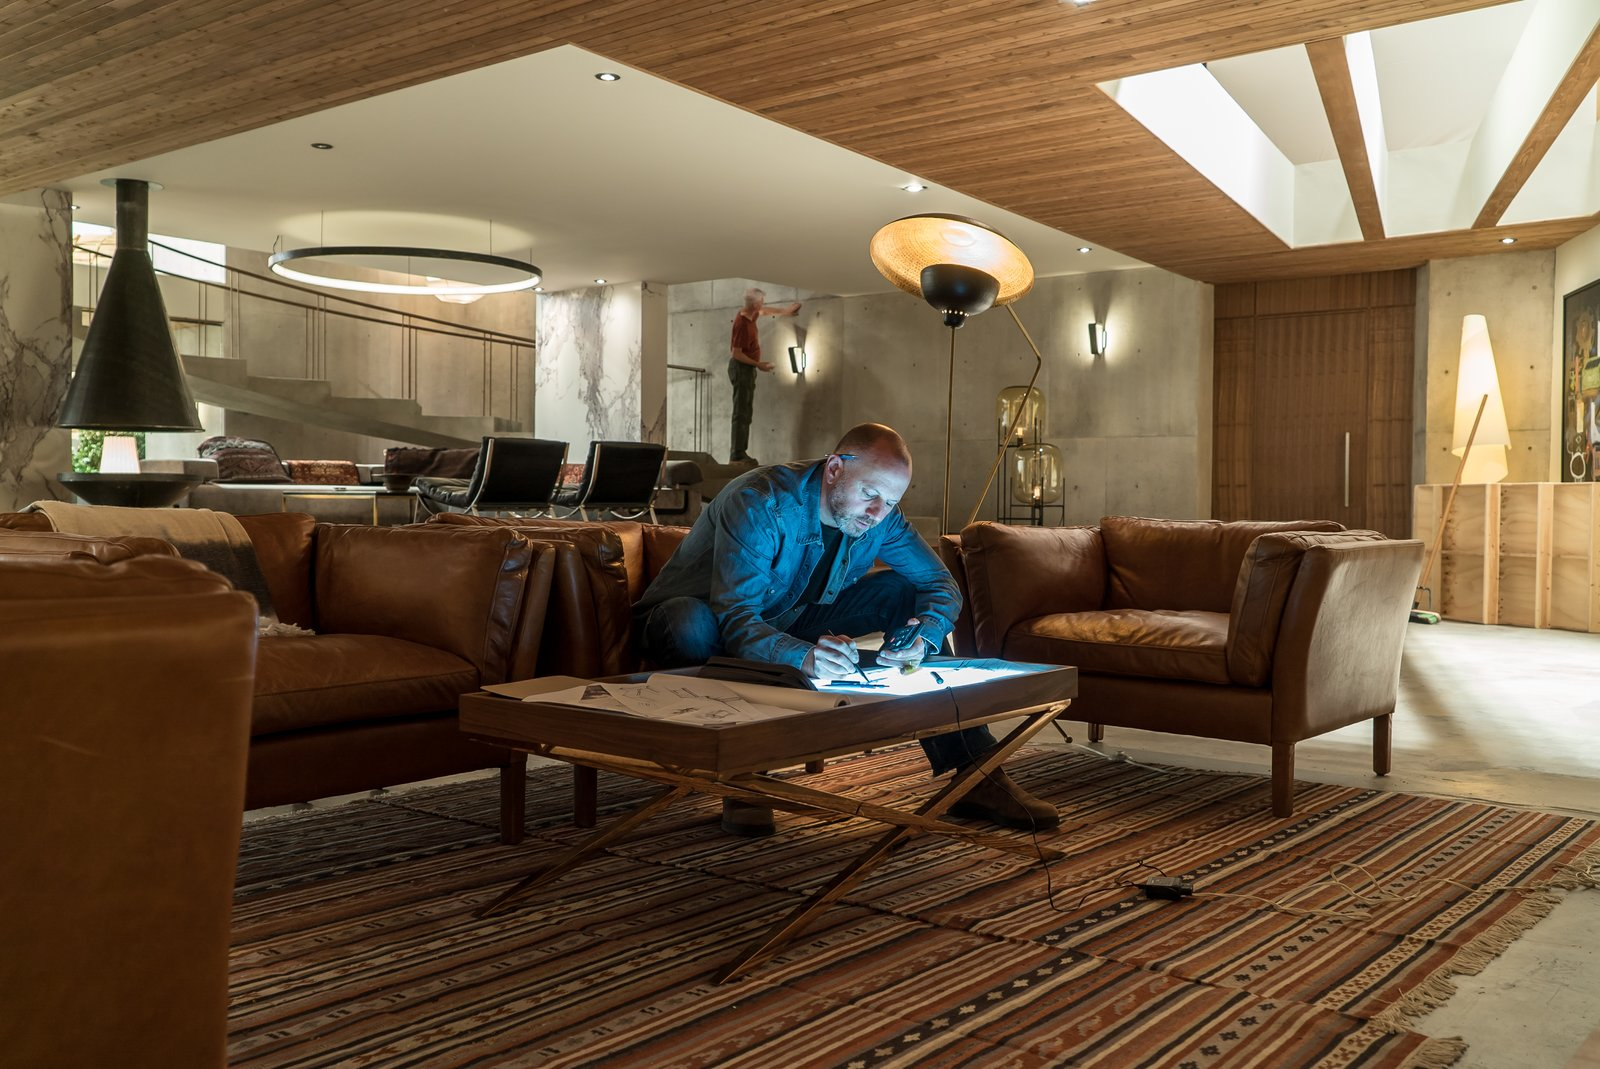 Real cedar planks line the ceilings. Novotny works in the  Photo 4 of 10 in Here's How Hollywood Builds a Malibu Dream Home—on a Vancouver Soundstage